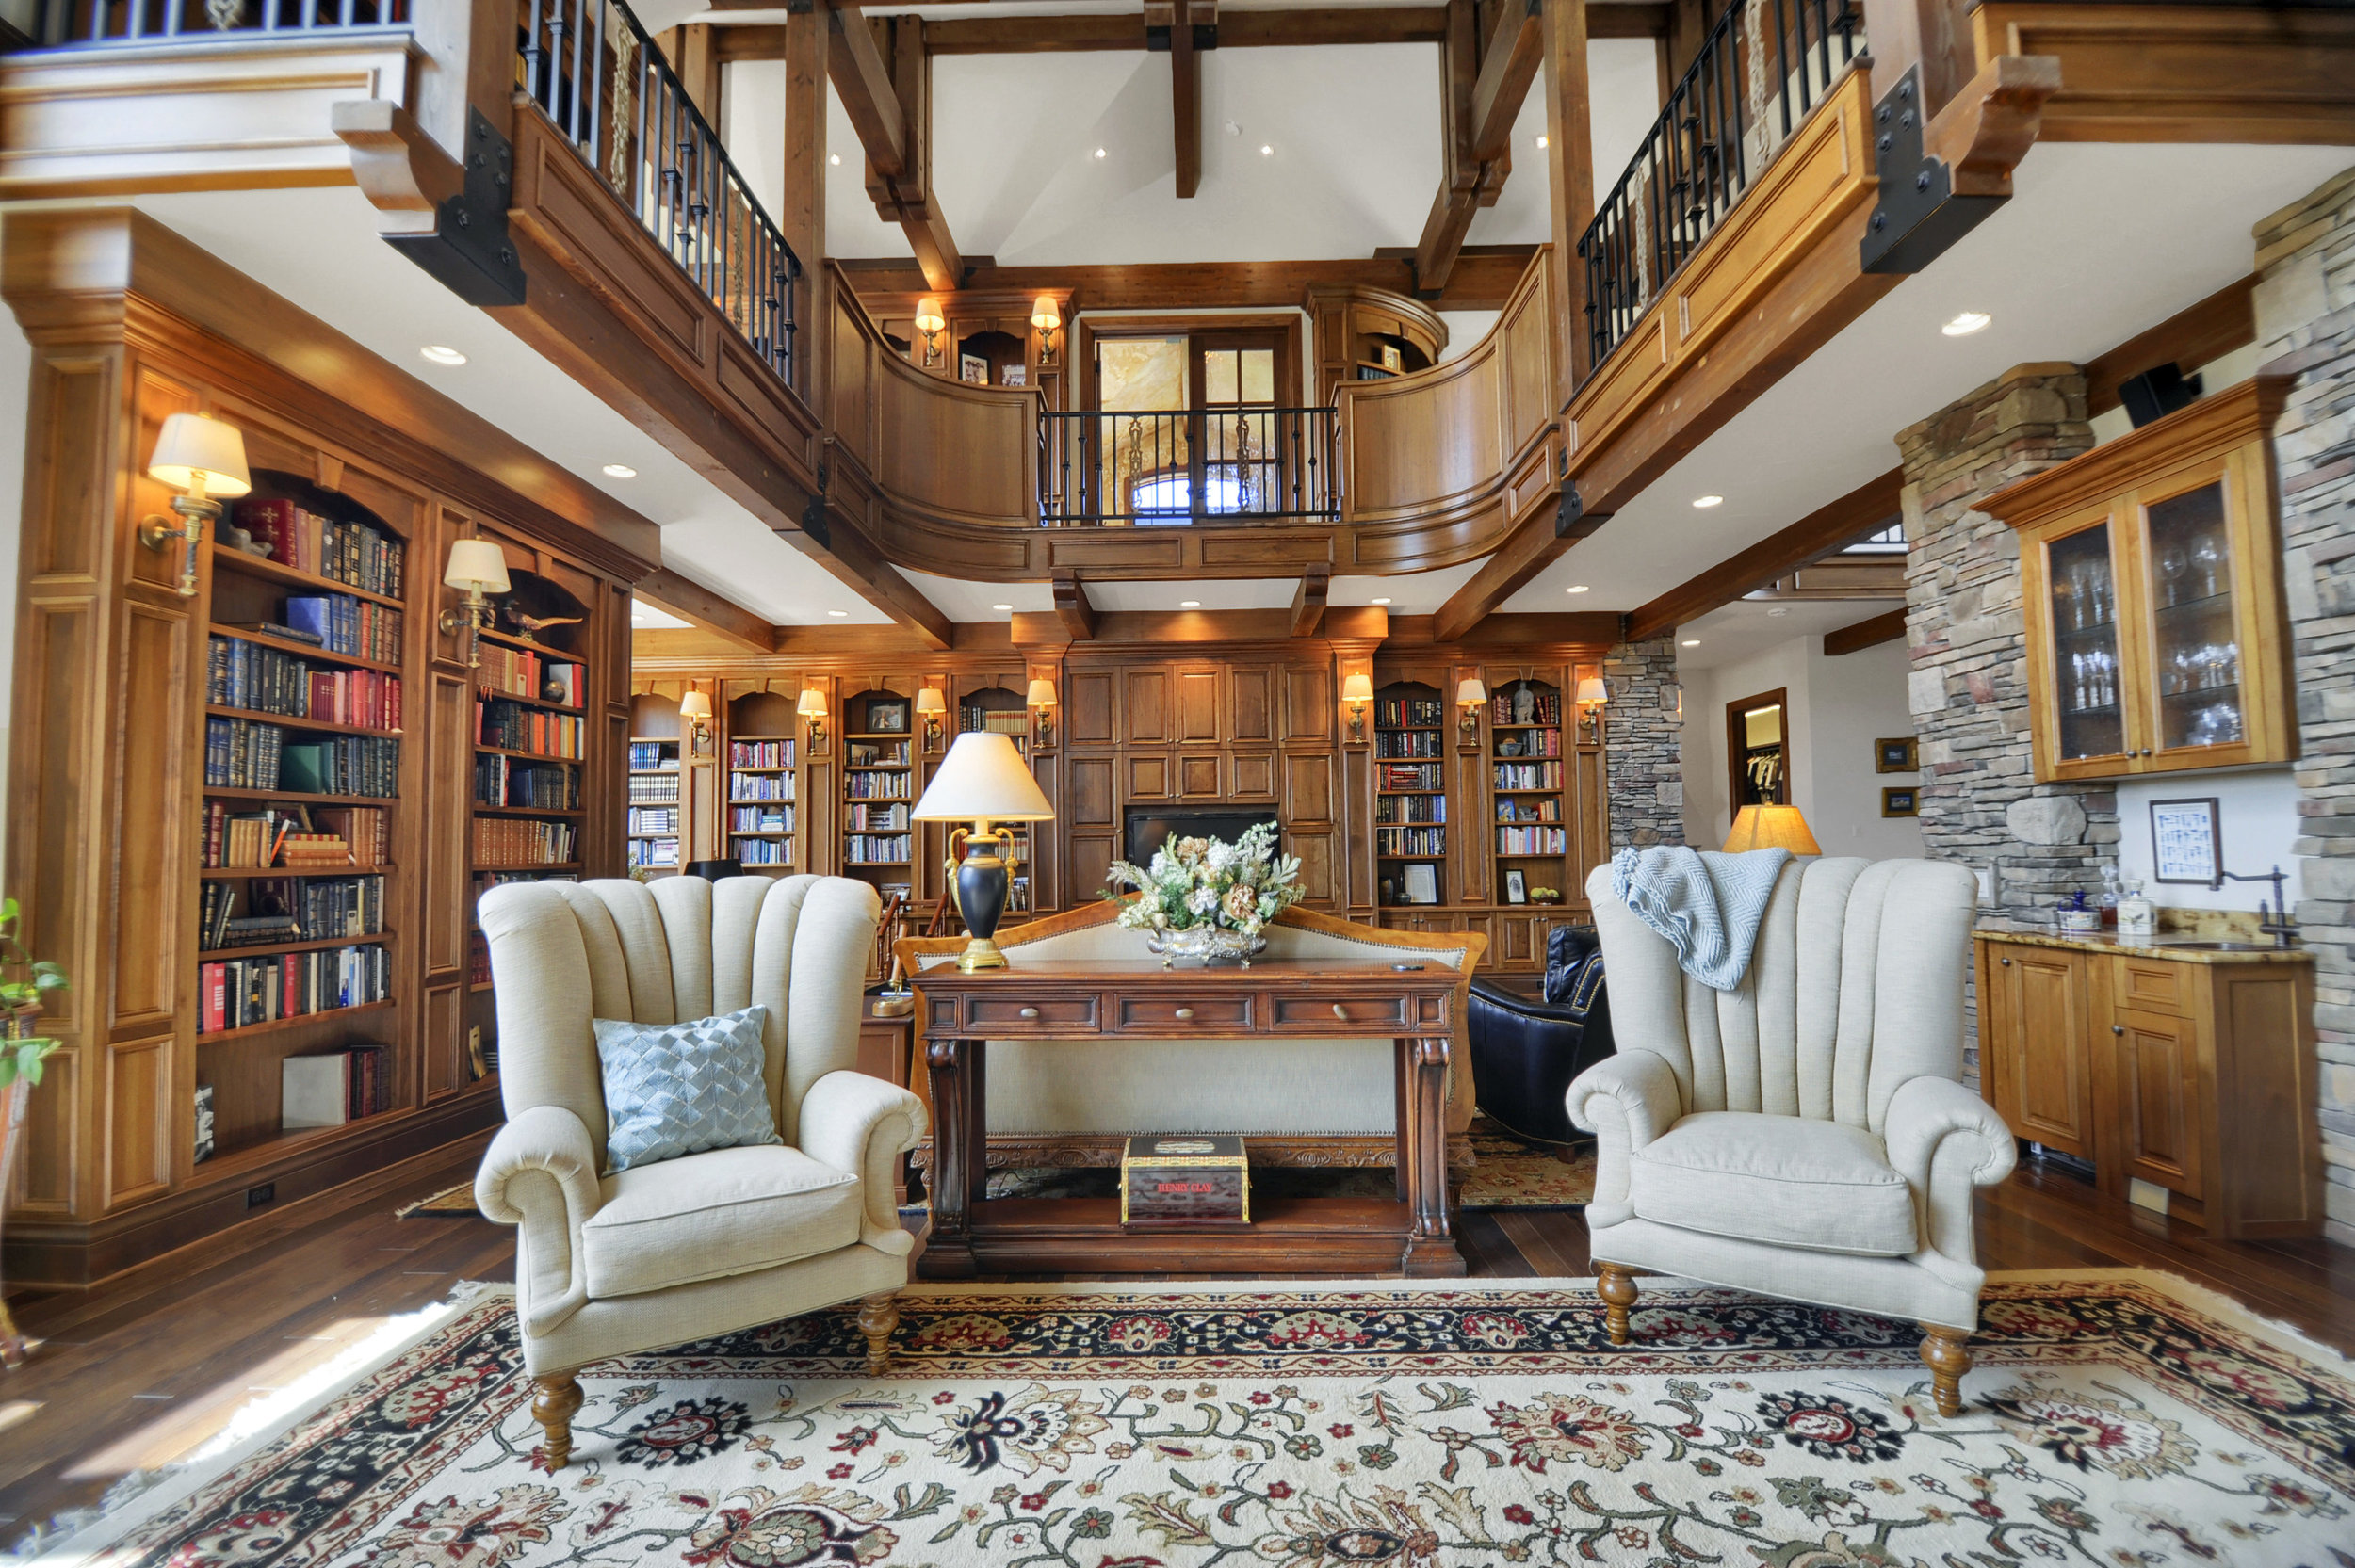 8 - Great room with overlook_l-brary above.jpg